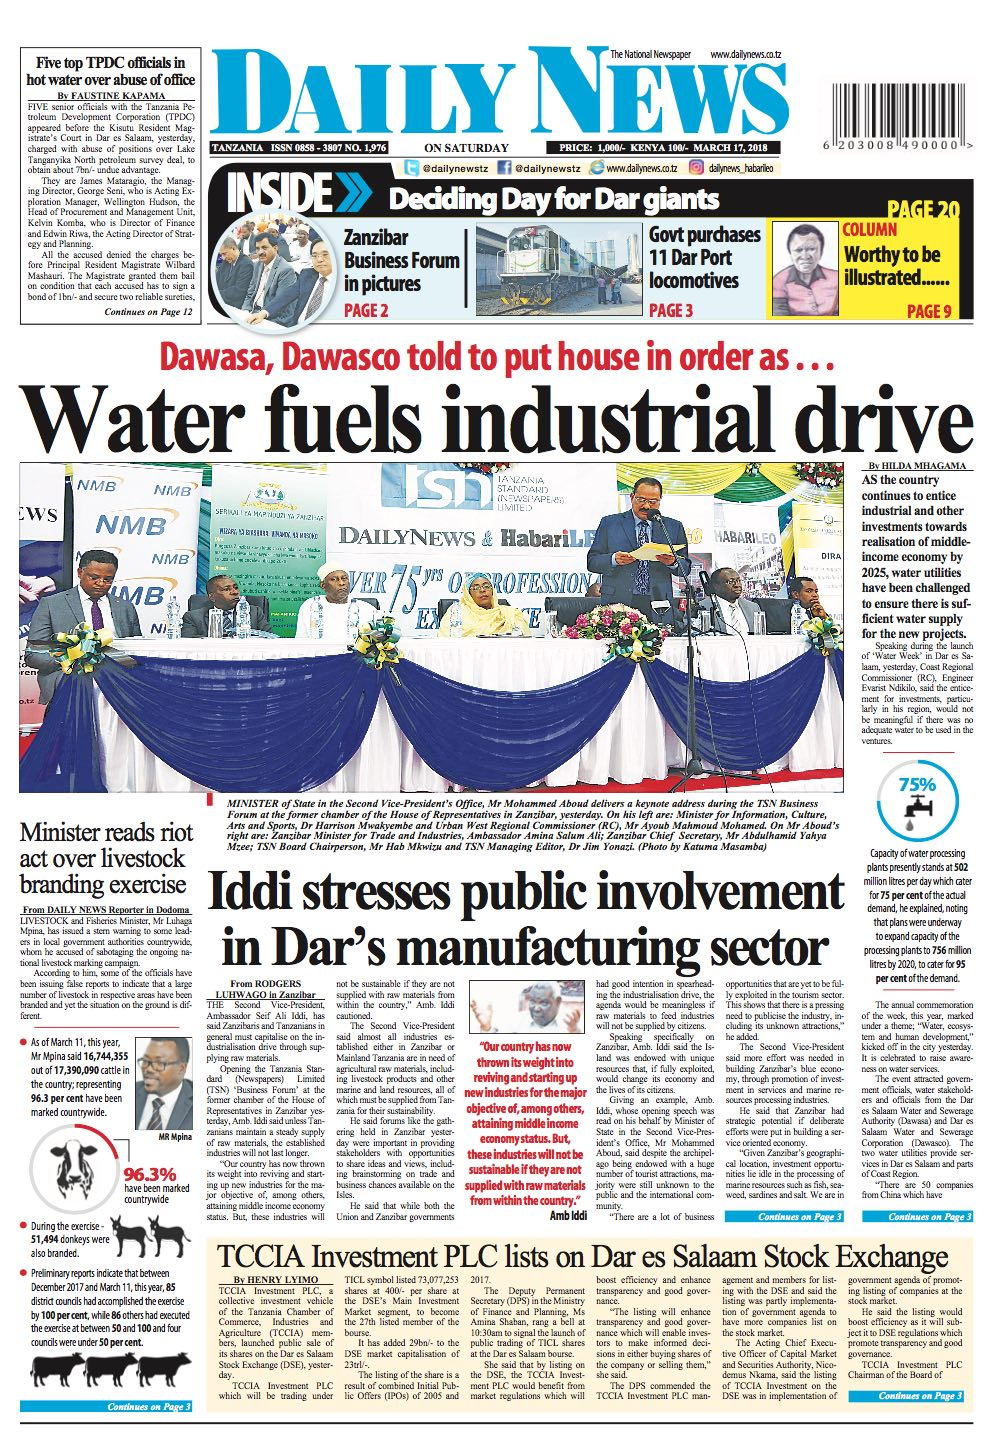 WATER FUELS INDUSTRIAL DRIVE